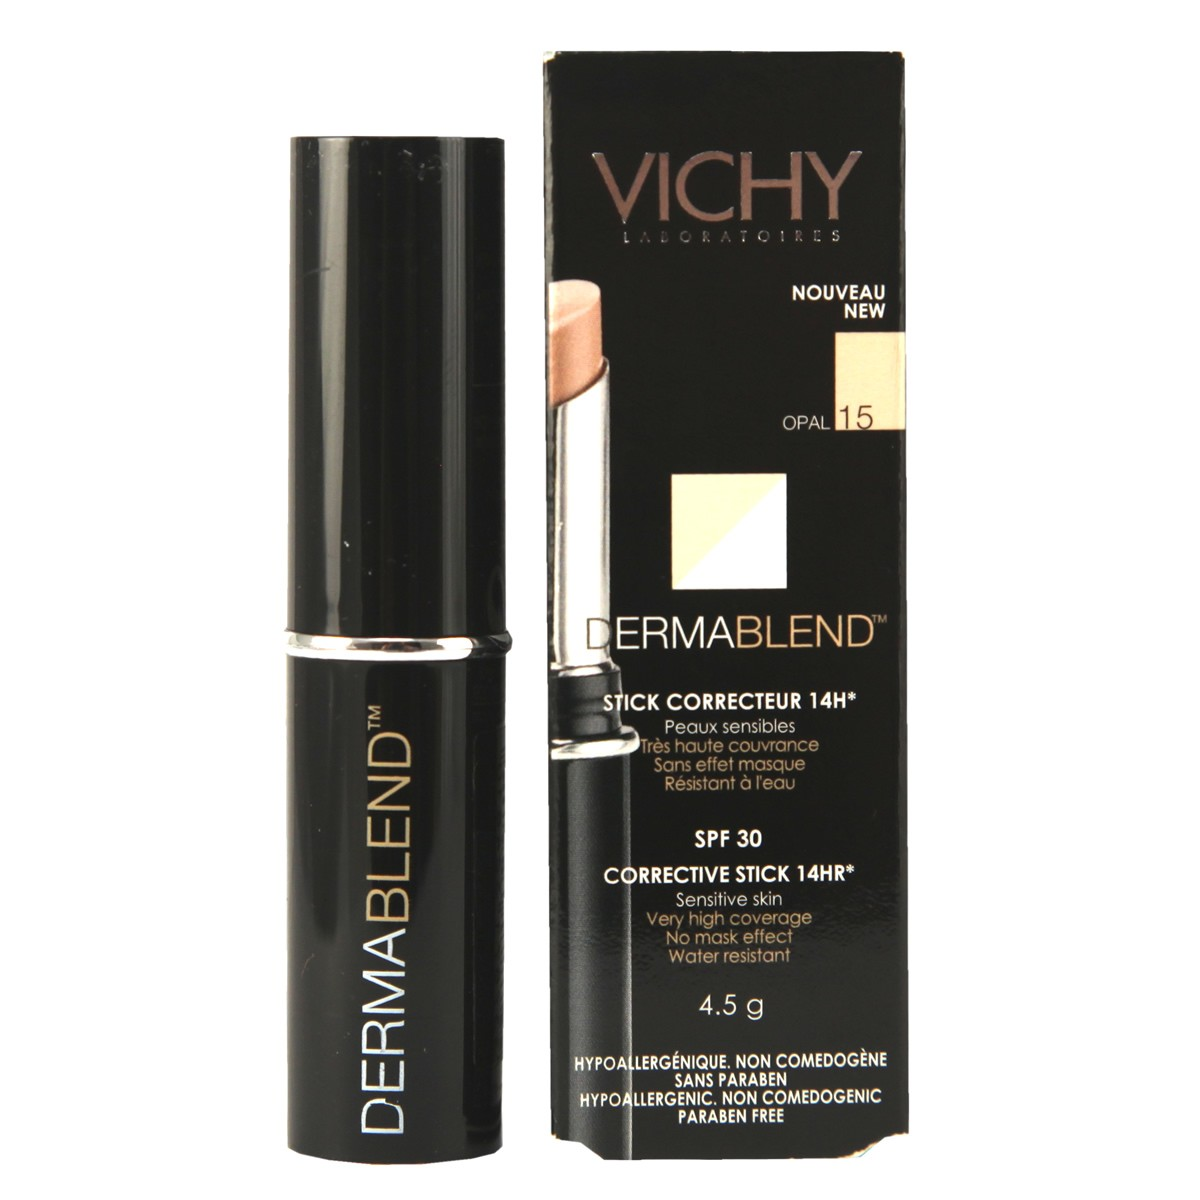 Vichy Dermablend Corrective Stick 14Hr